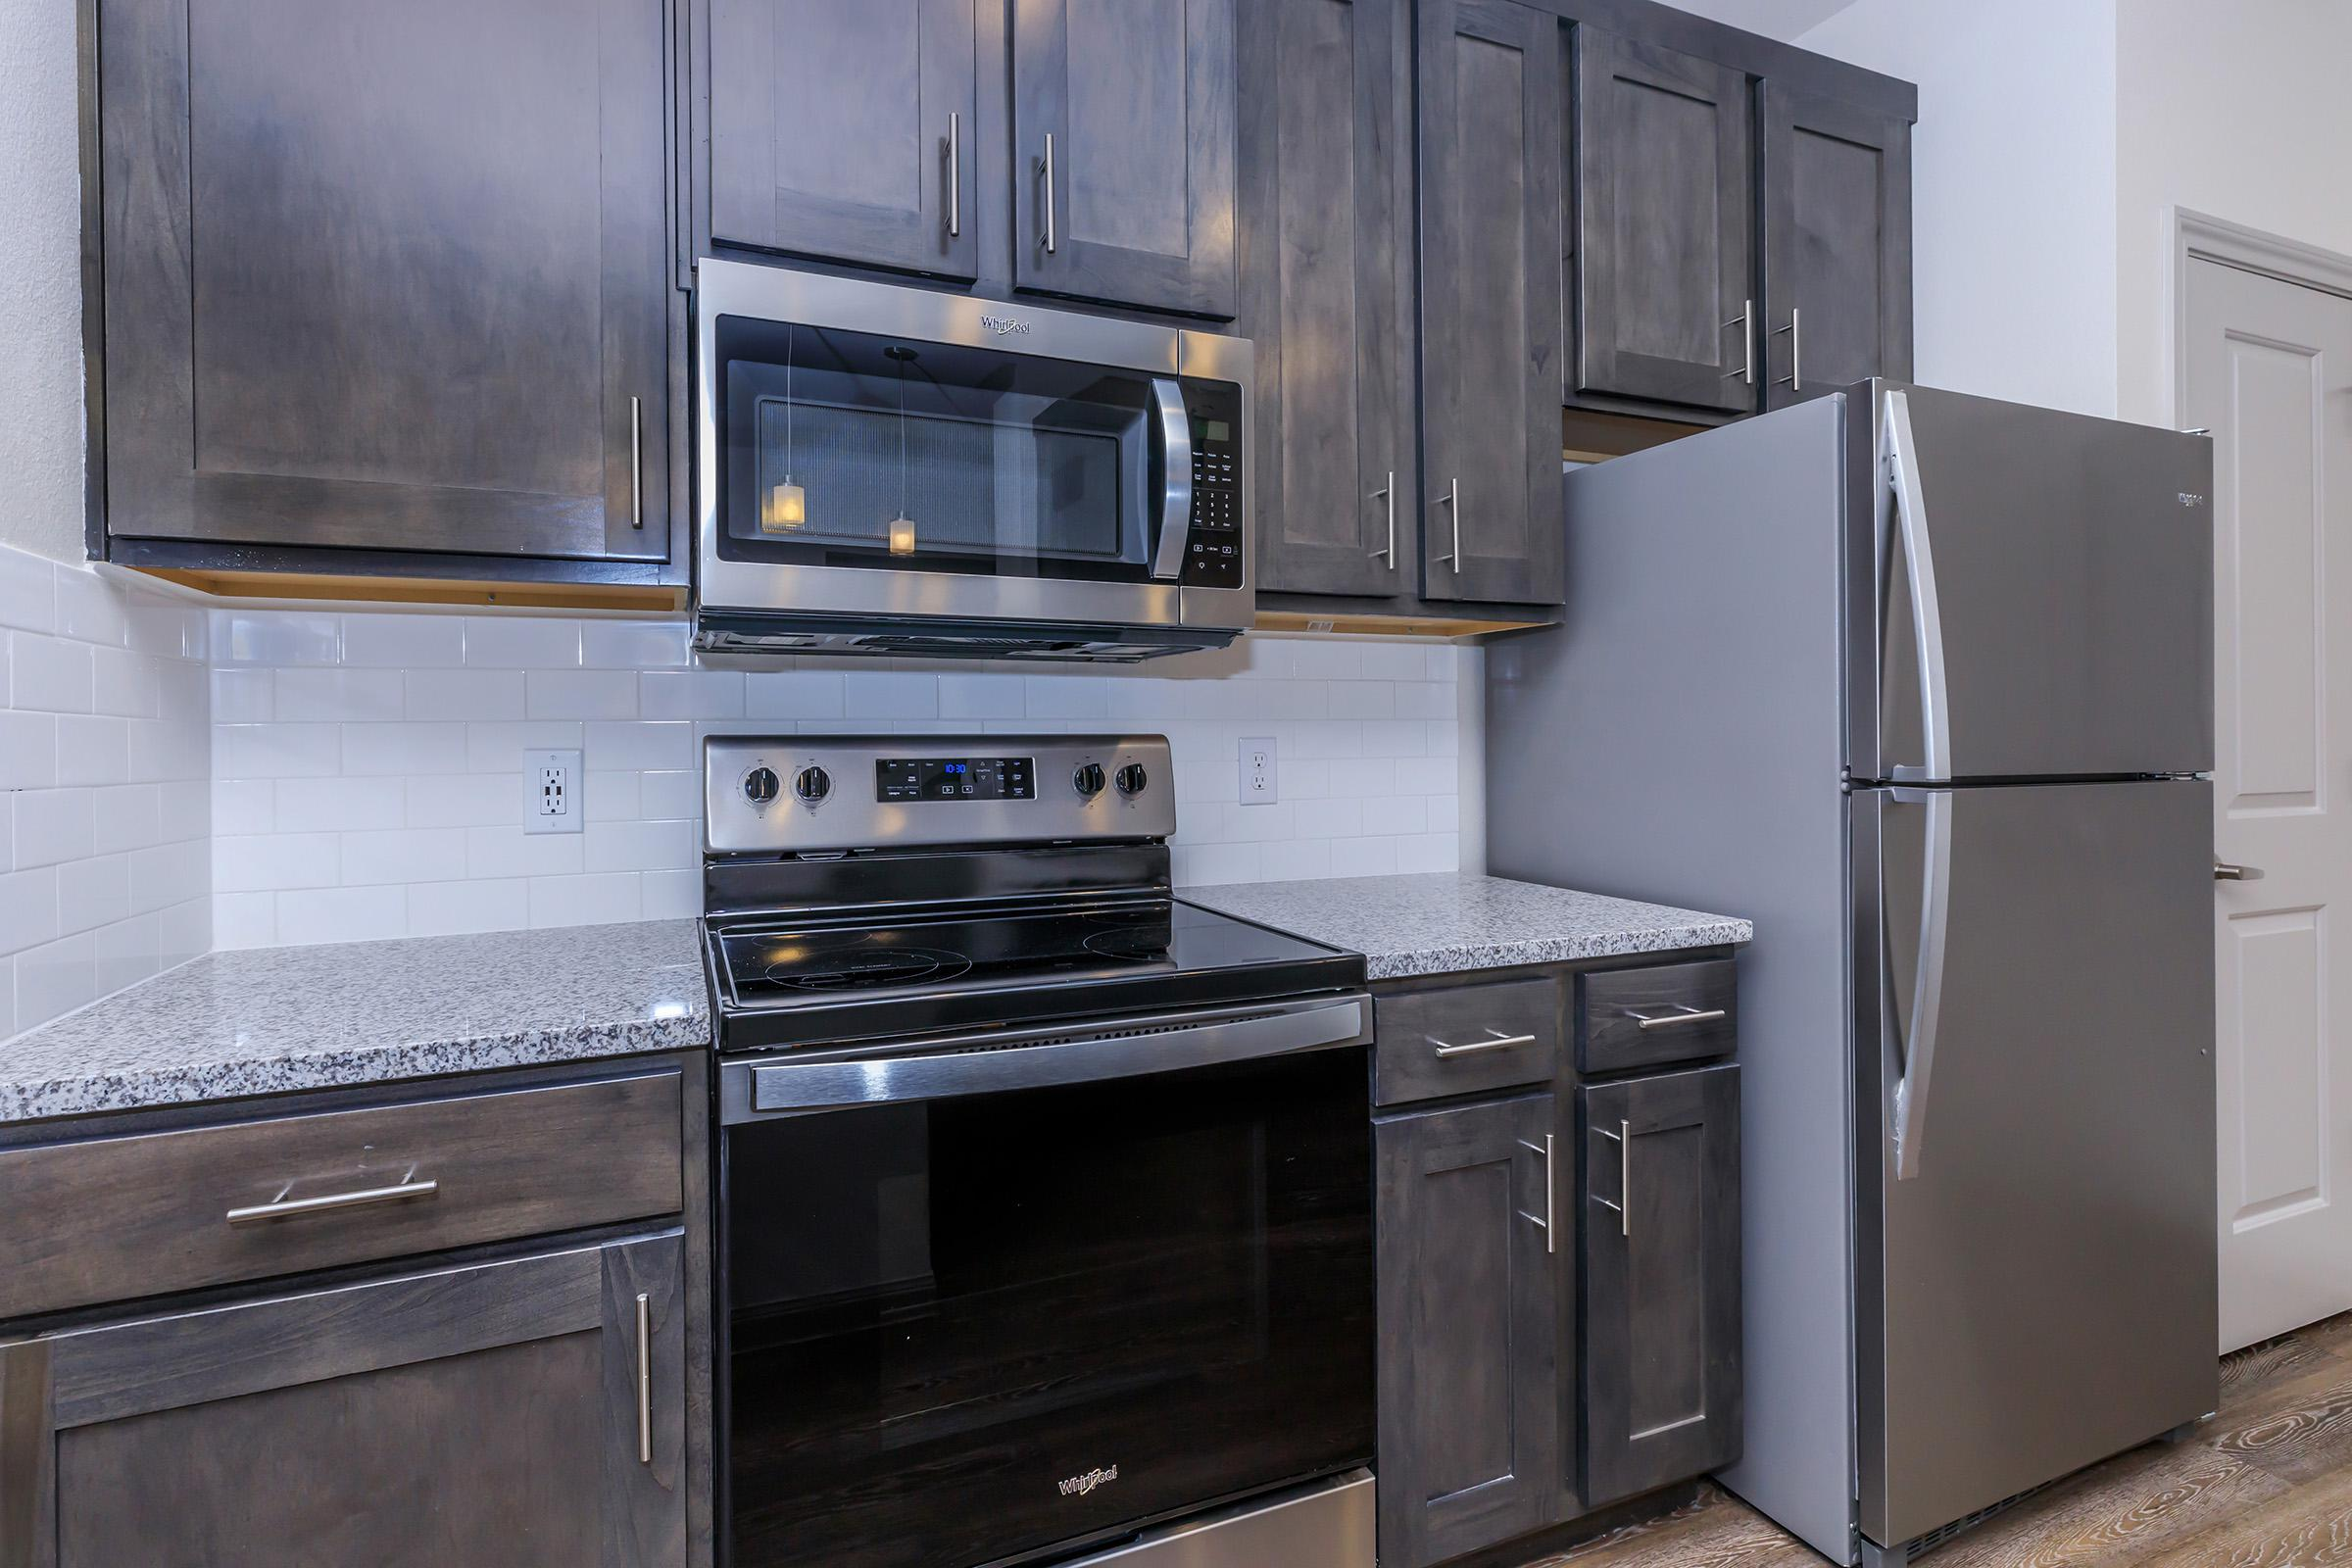 STAINLESS STEEL APPLIANCE PACKAGE